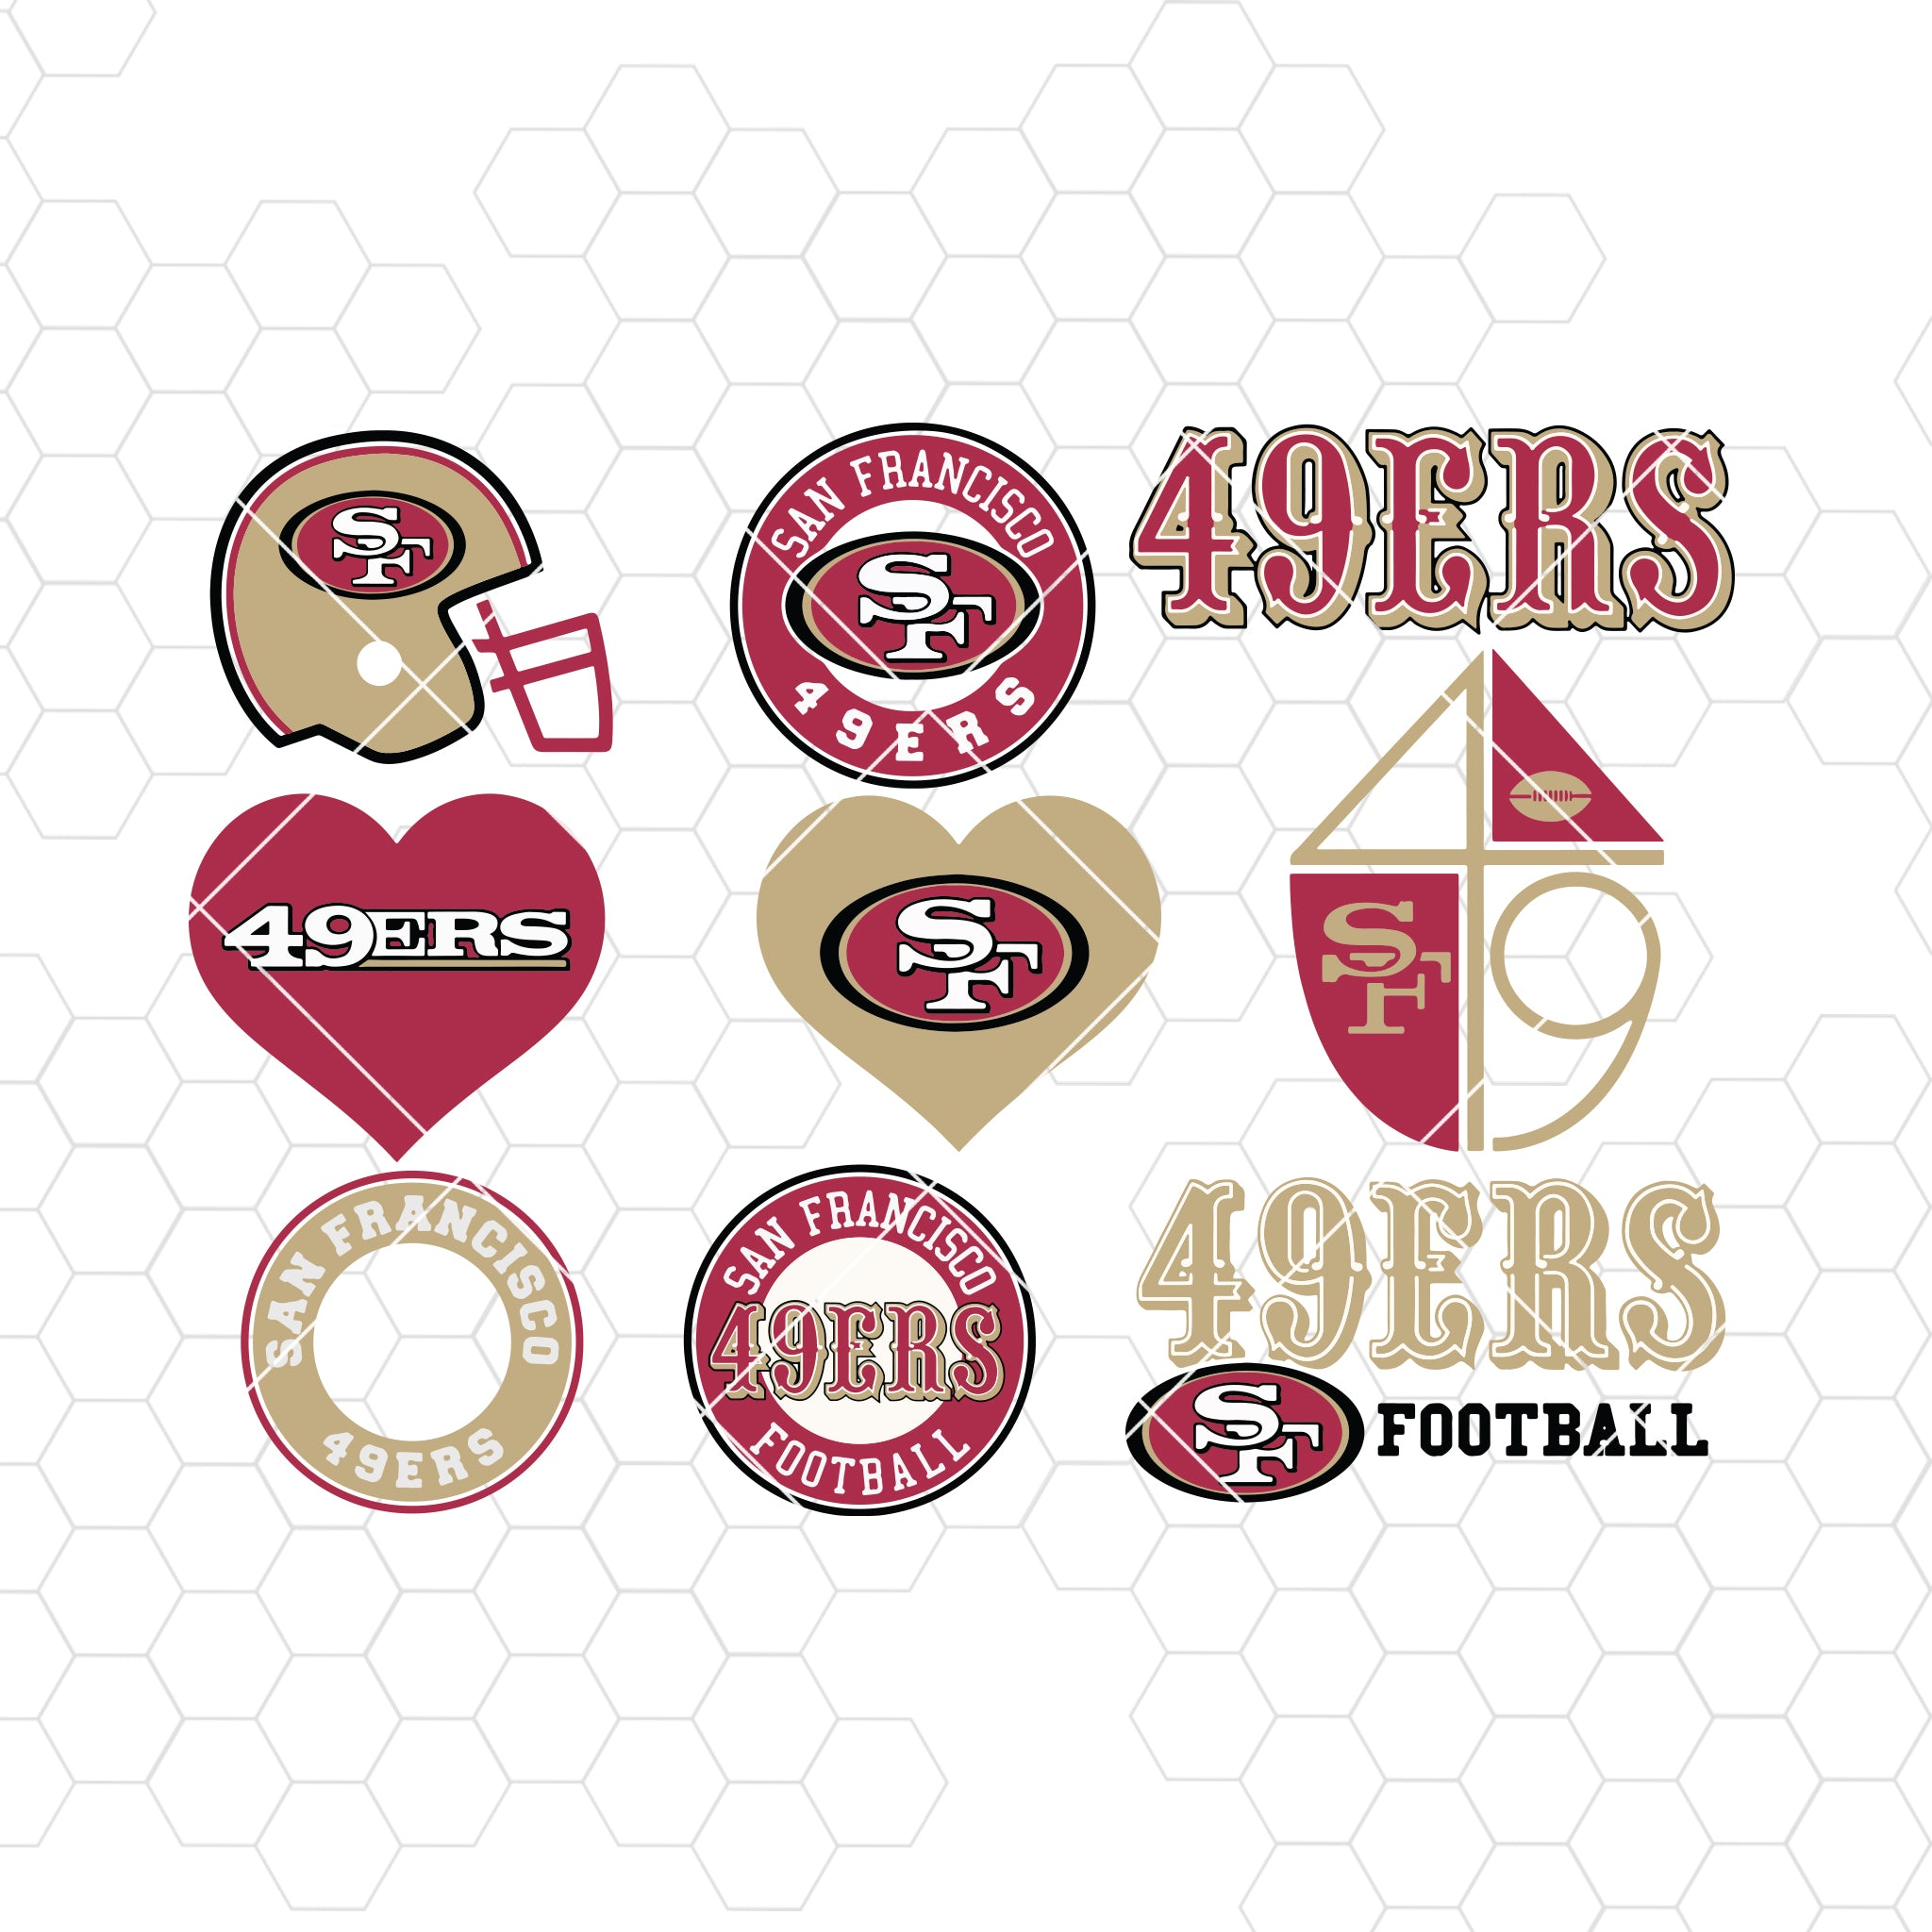 San Francisco 49ers Svg San Francisco 49ers Files 49ers Logo Footba Doran Star